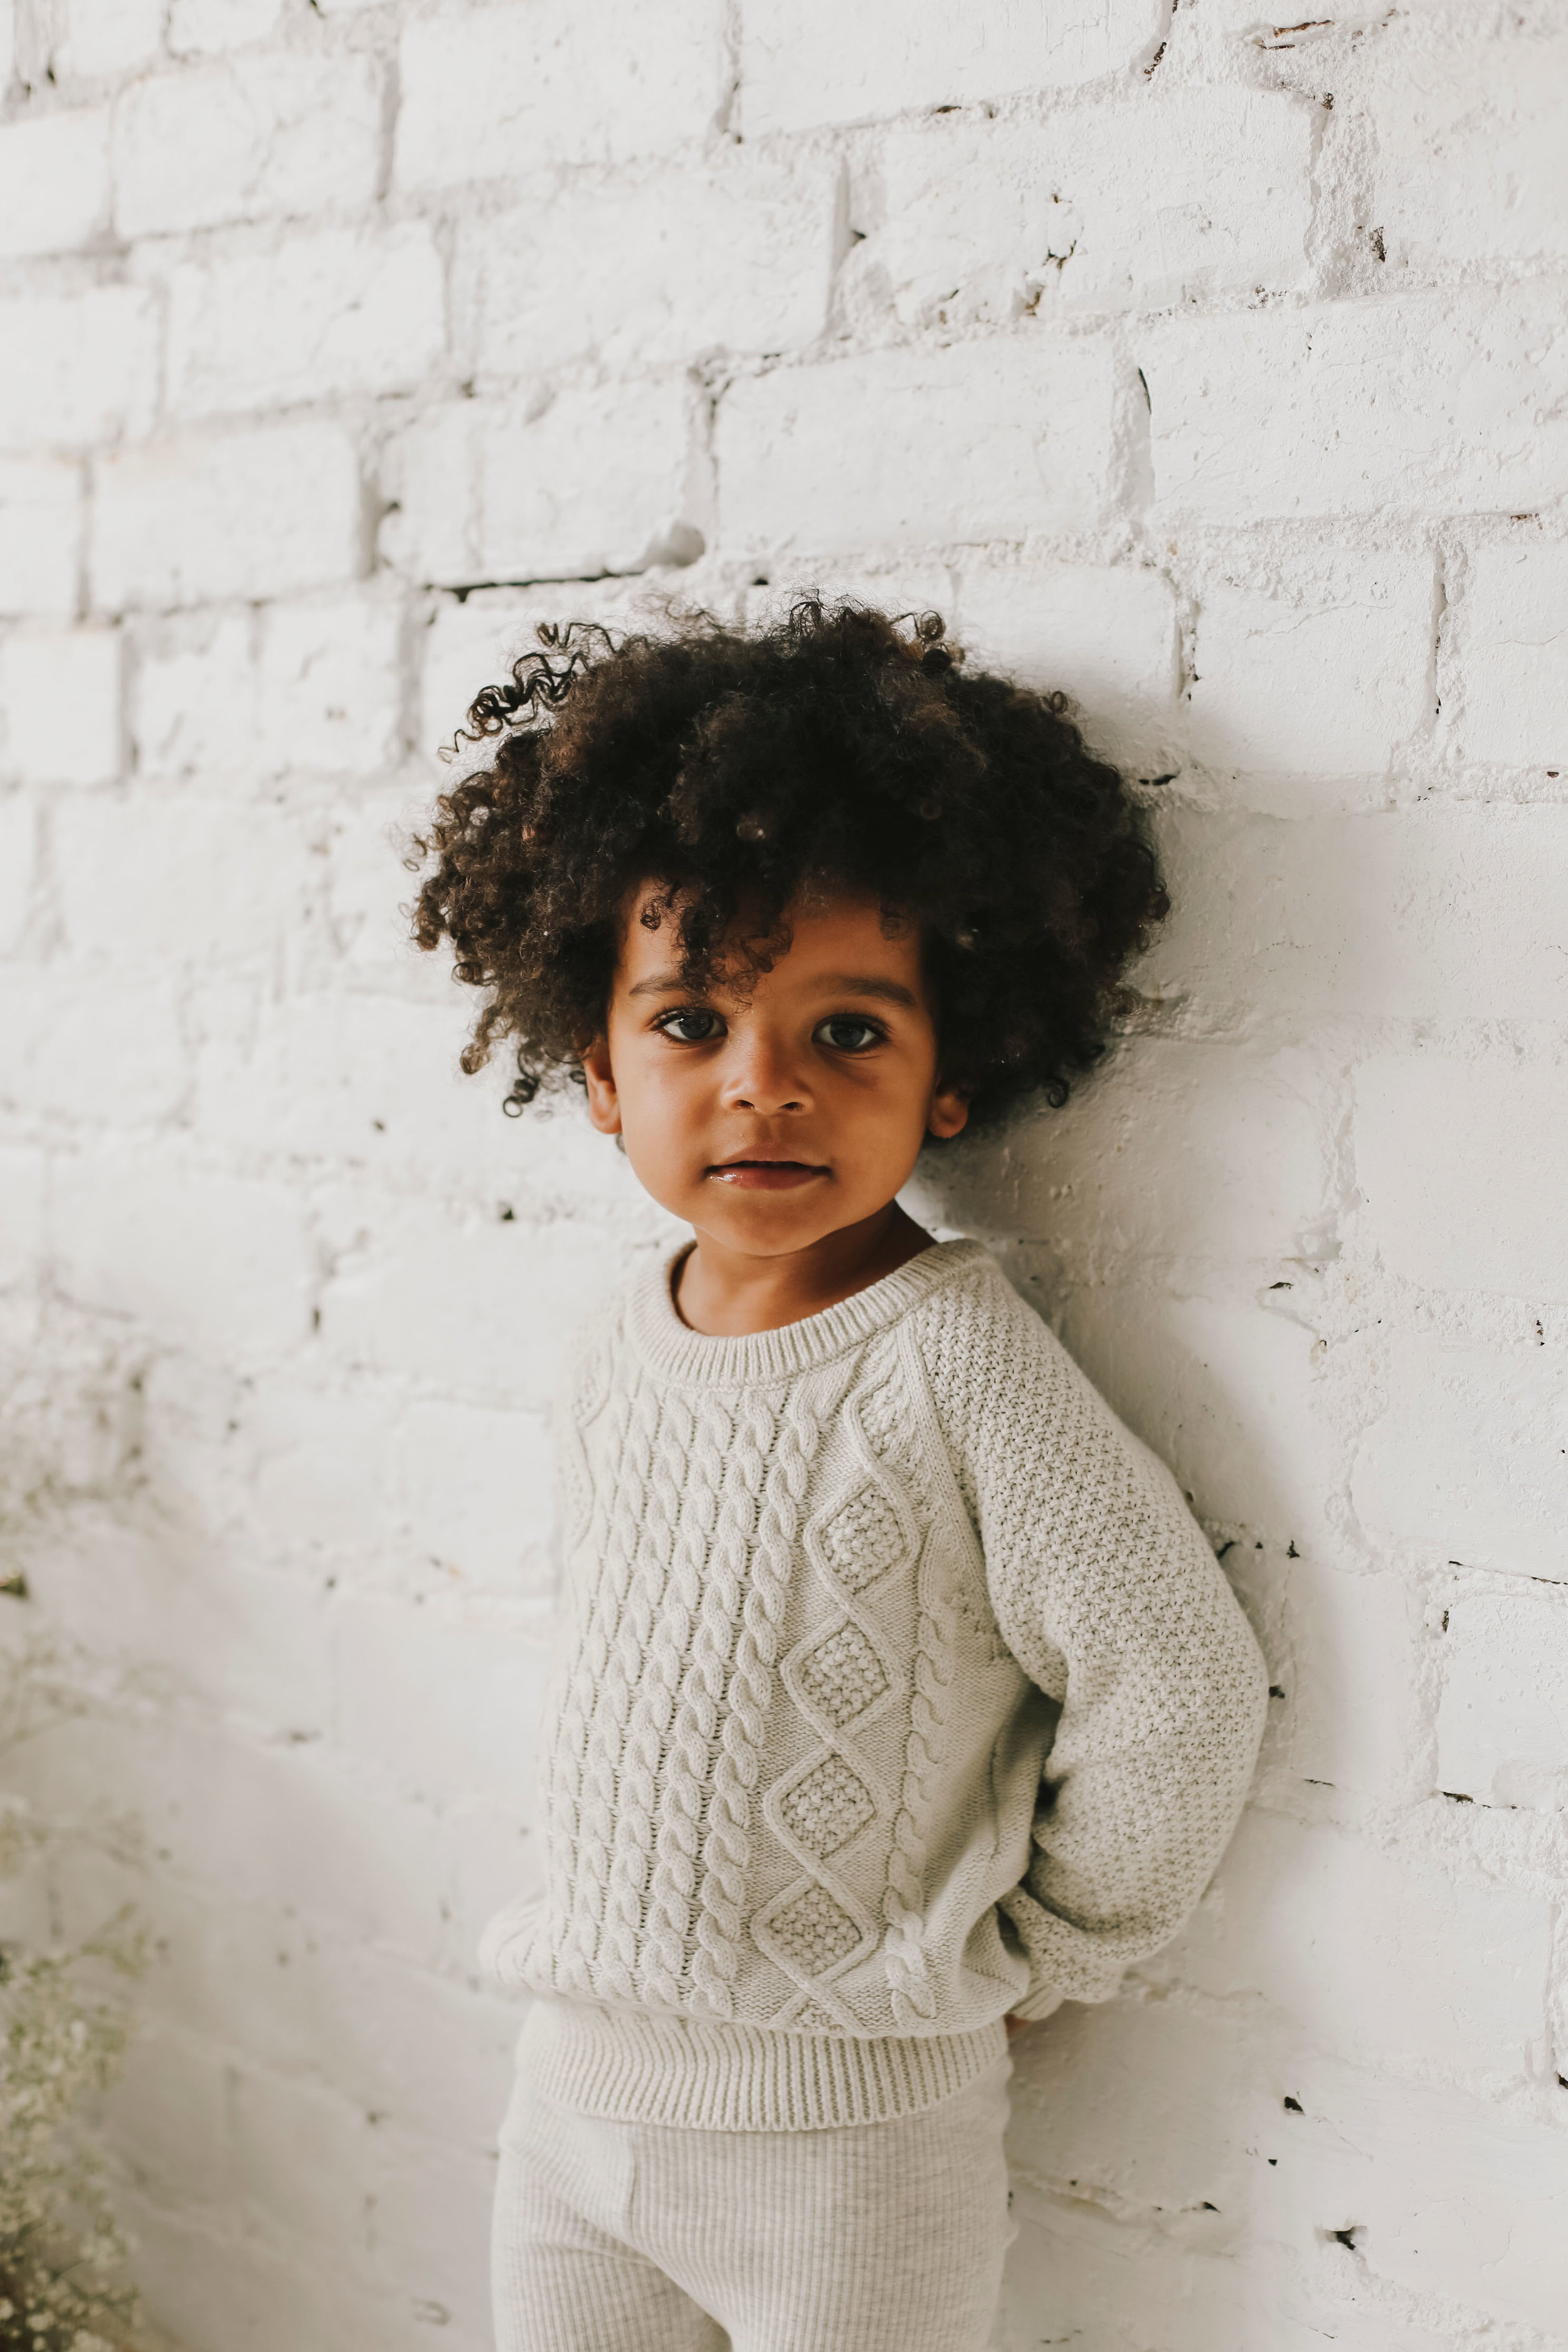 JamieKay_AW19_CottonKnit_CableSweater_Oatmeal_One.jpg